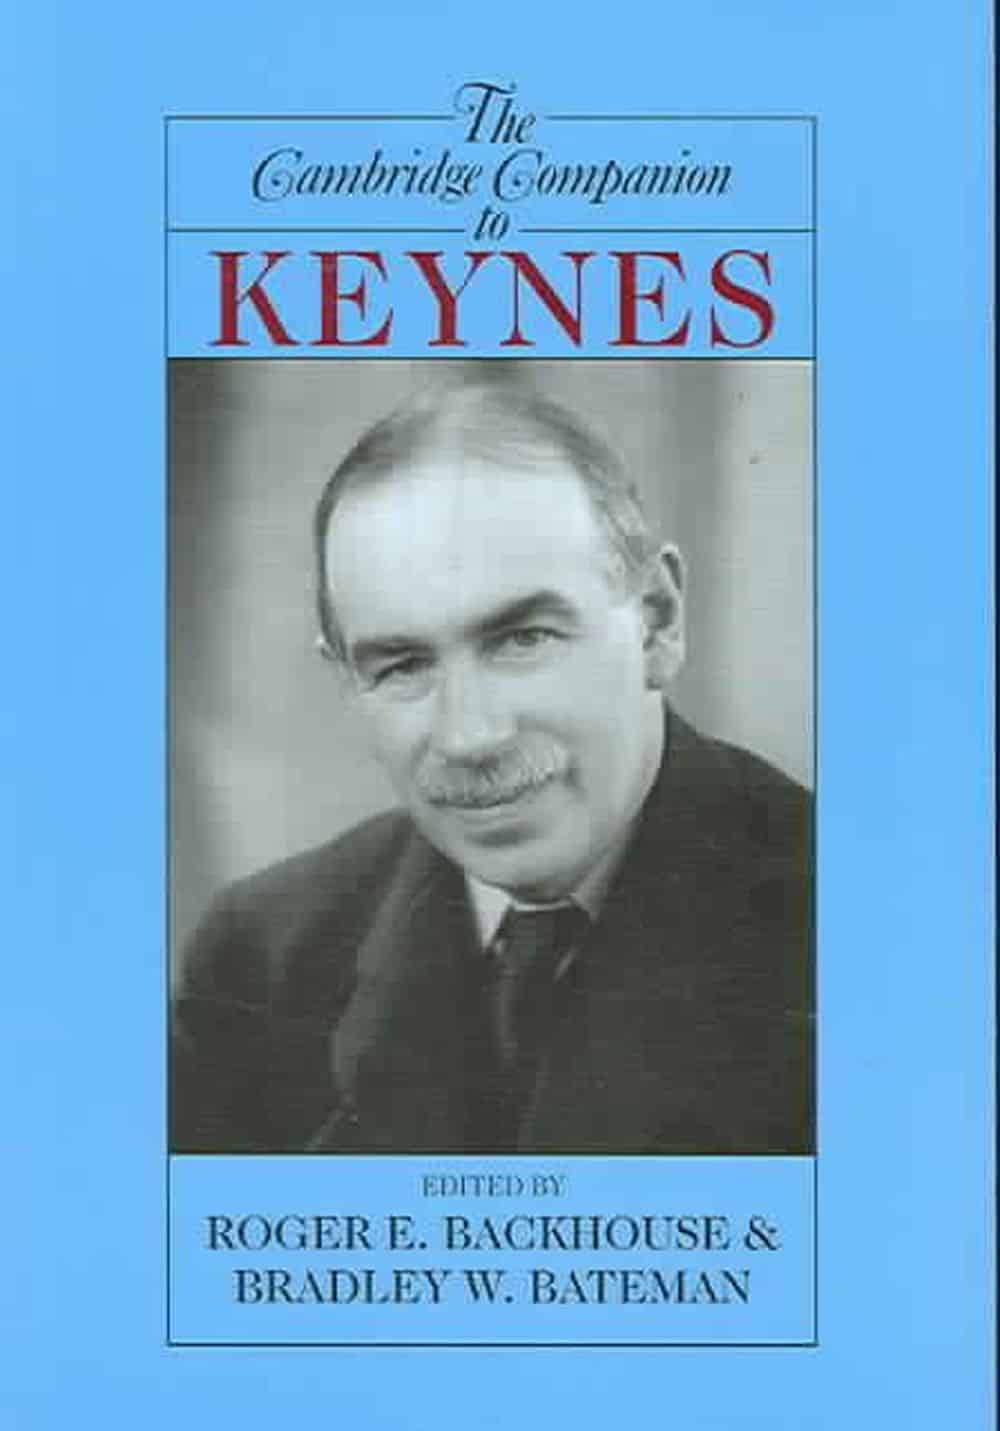 The Cambridge Companion to Keynes - The Cambridge Companion to Keynes